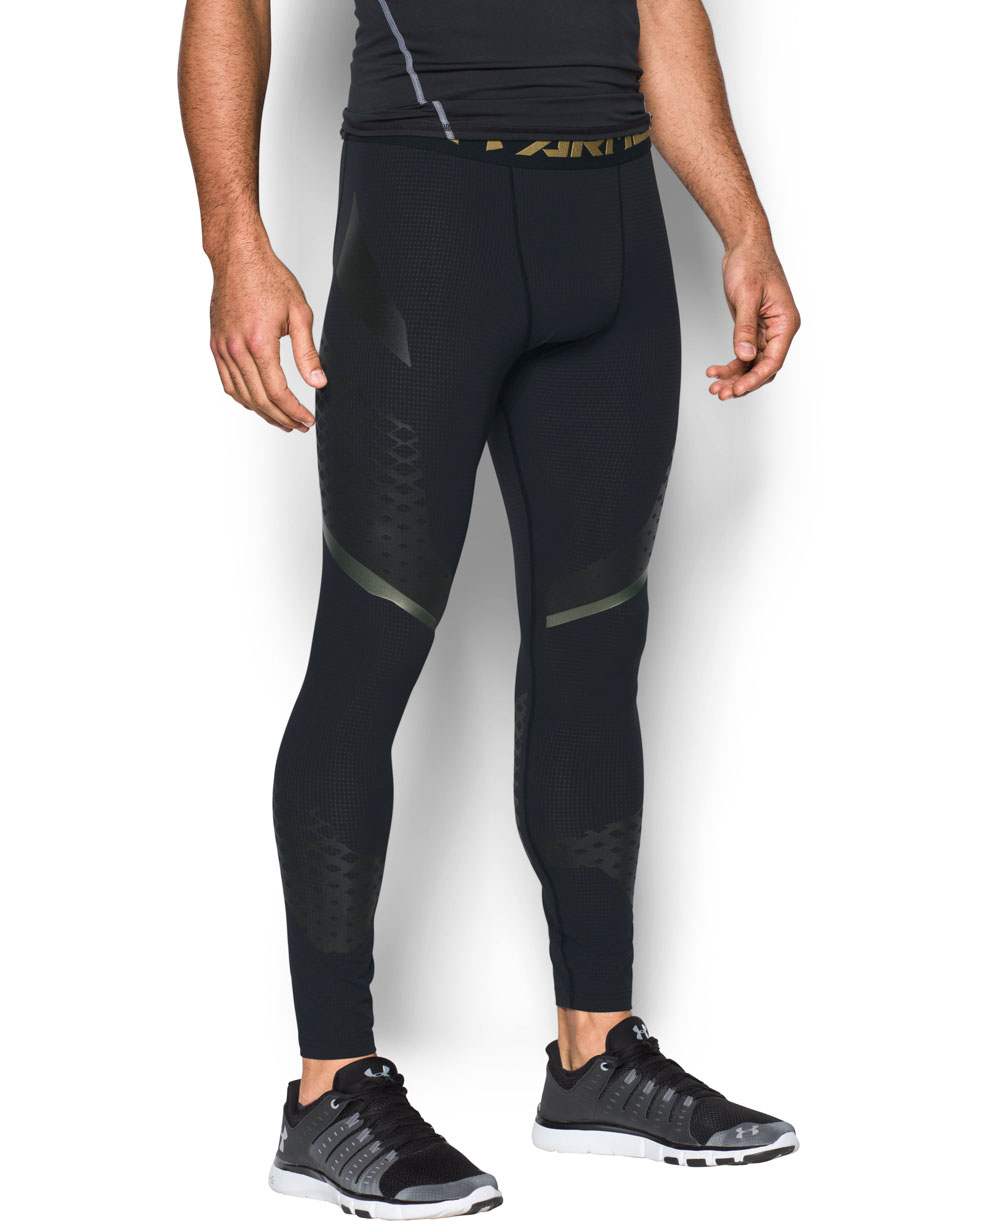 HeatGear Armour Zone Legging Homme Black